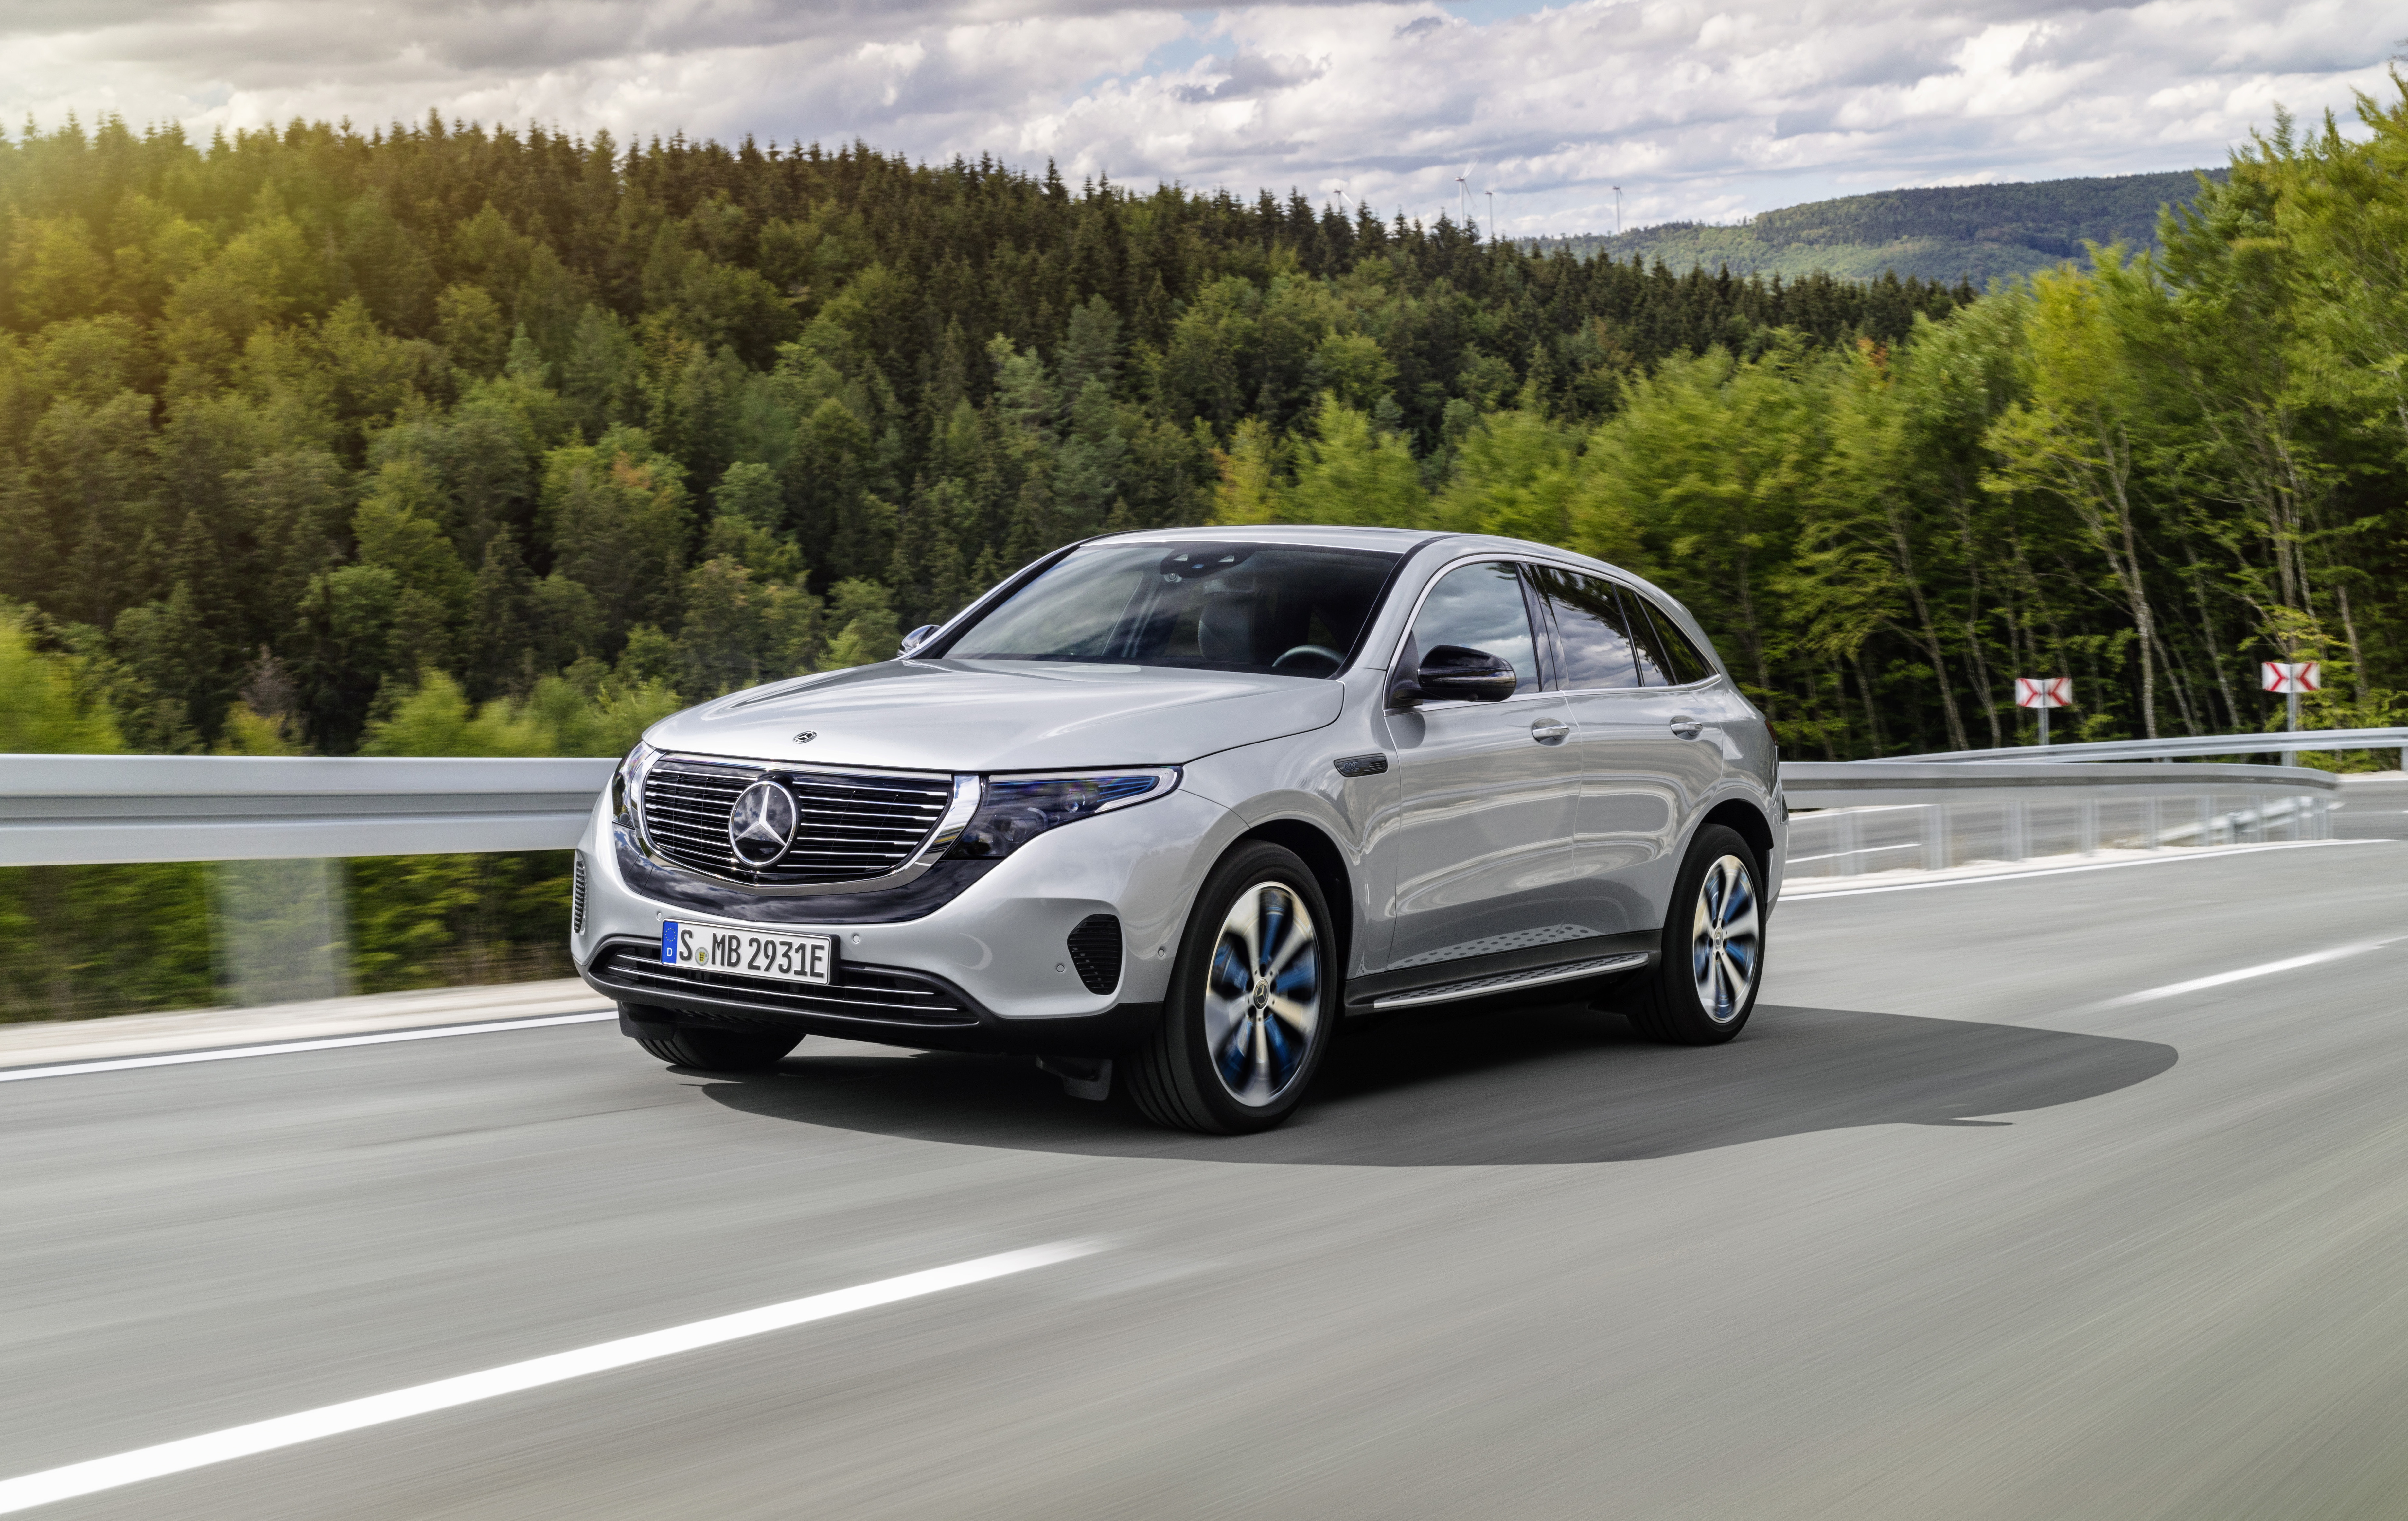 2019 Mercedes EQ C SUV | price, specs and release date ...